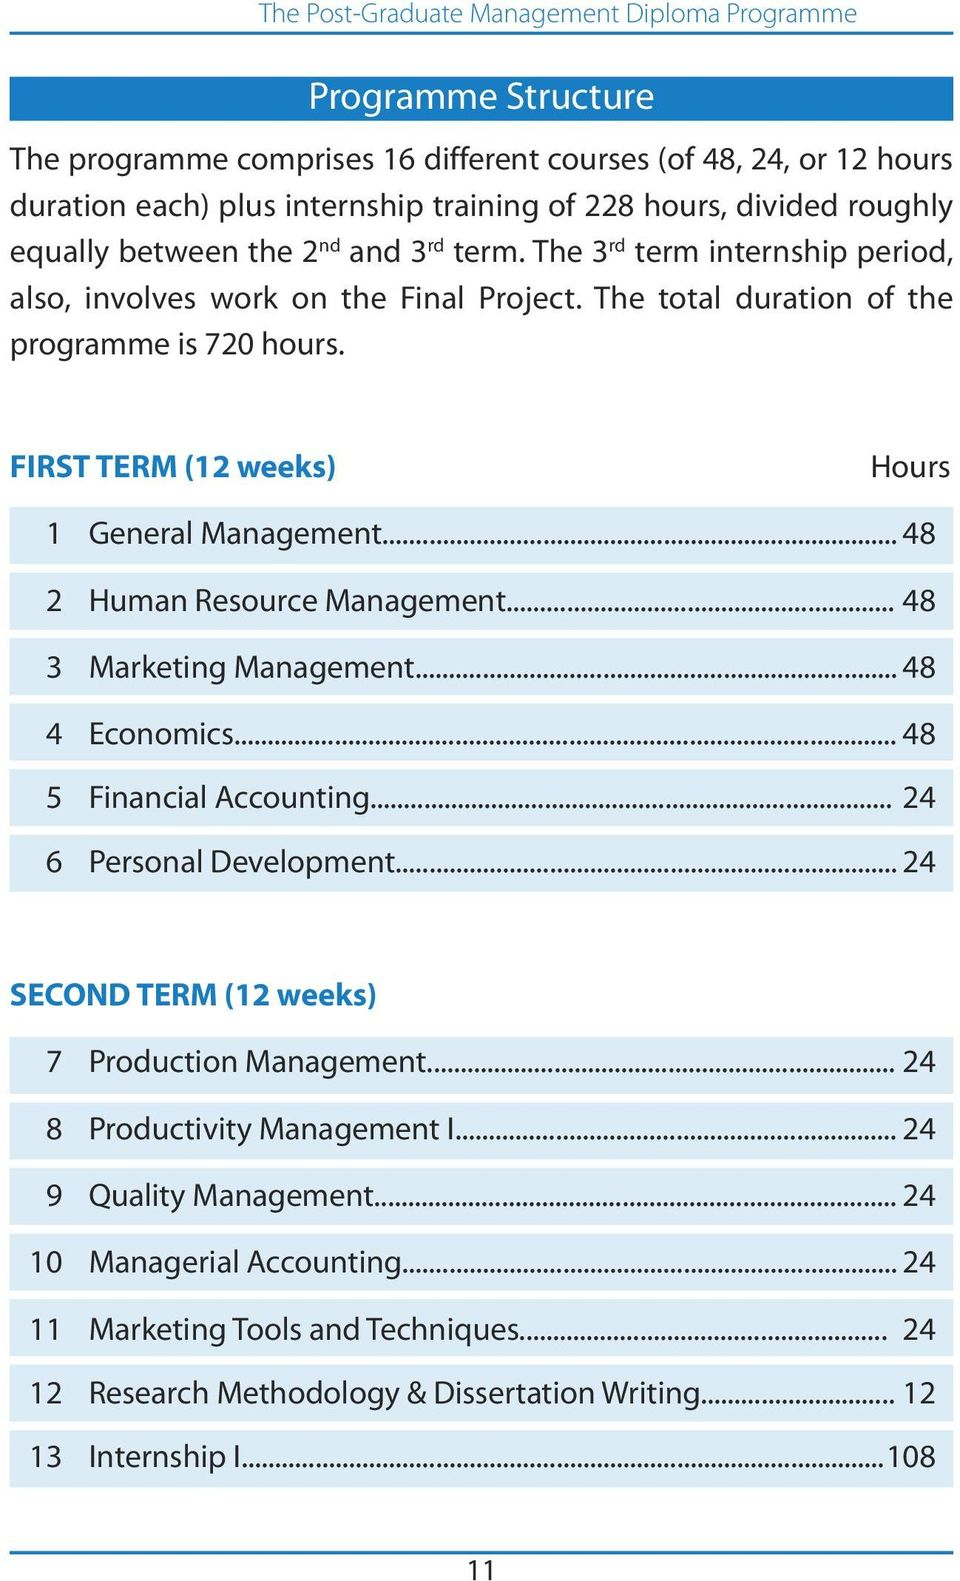 .. 48 2 Human Resource Management... 48 3 Marketing Management... 48 4 Economics... 48 5 Financial Accounting... 24 6 Personal Development... 24 SECOND TERM (12 weeks) 7 Production Management.